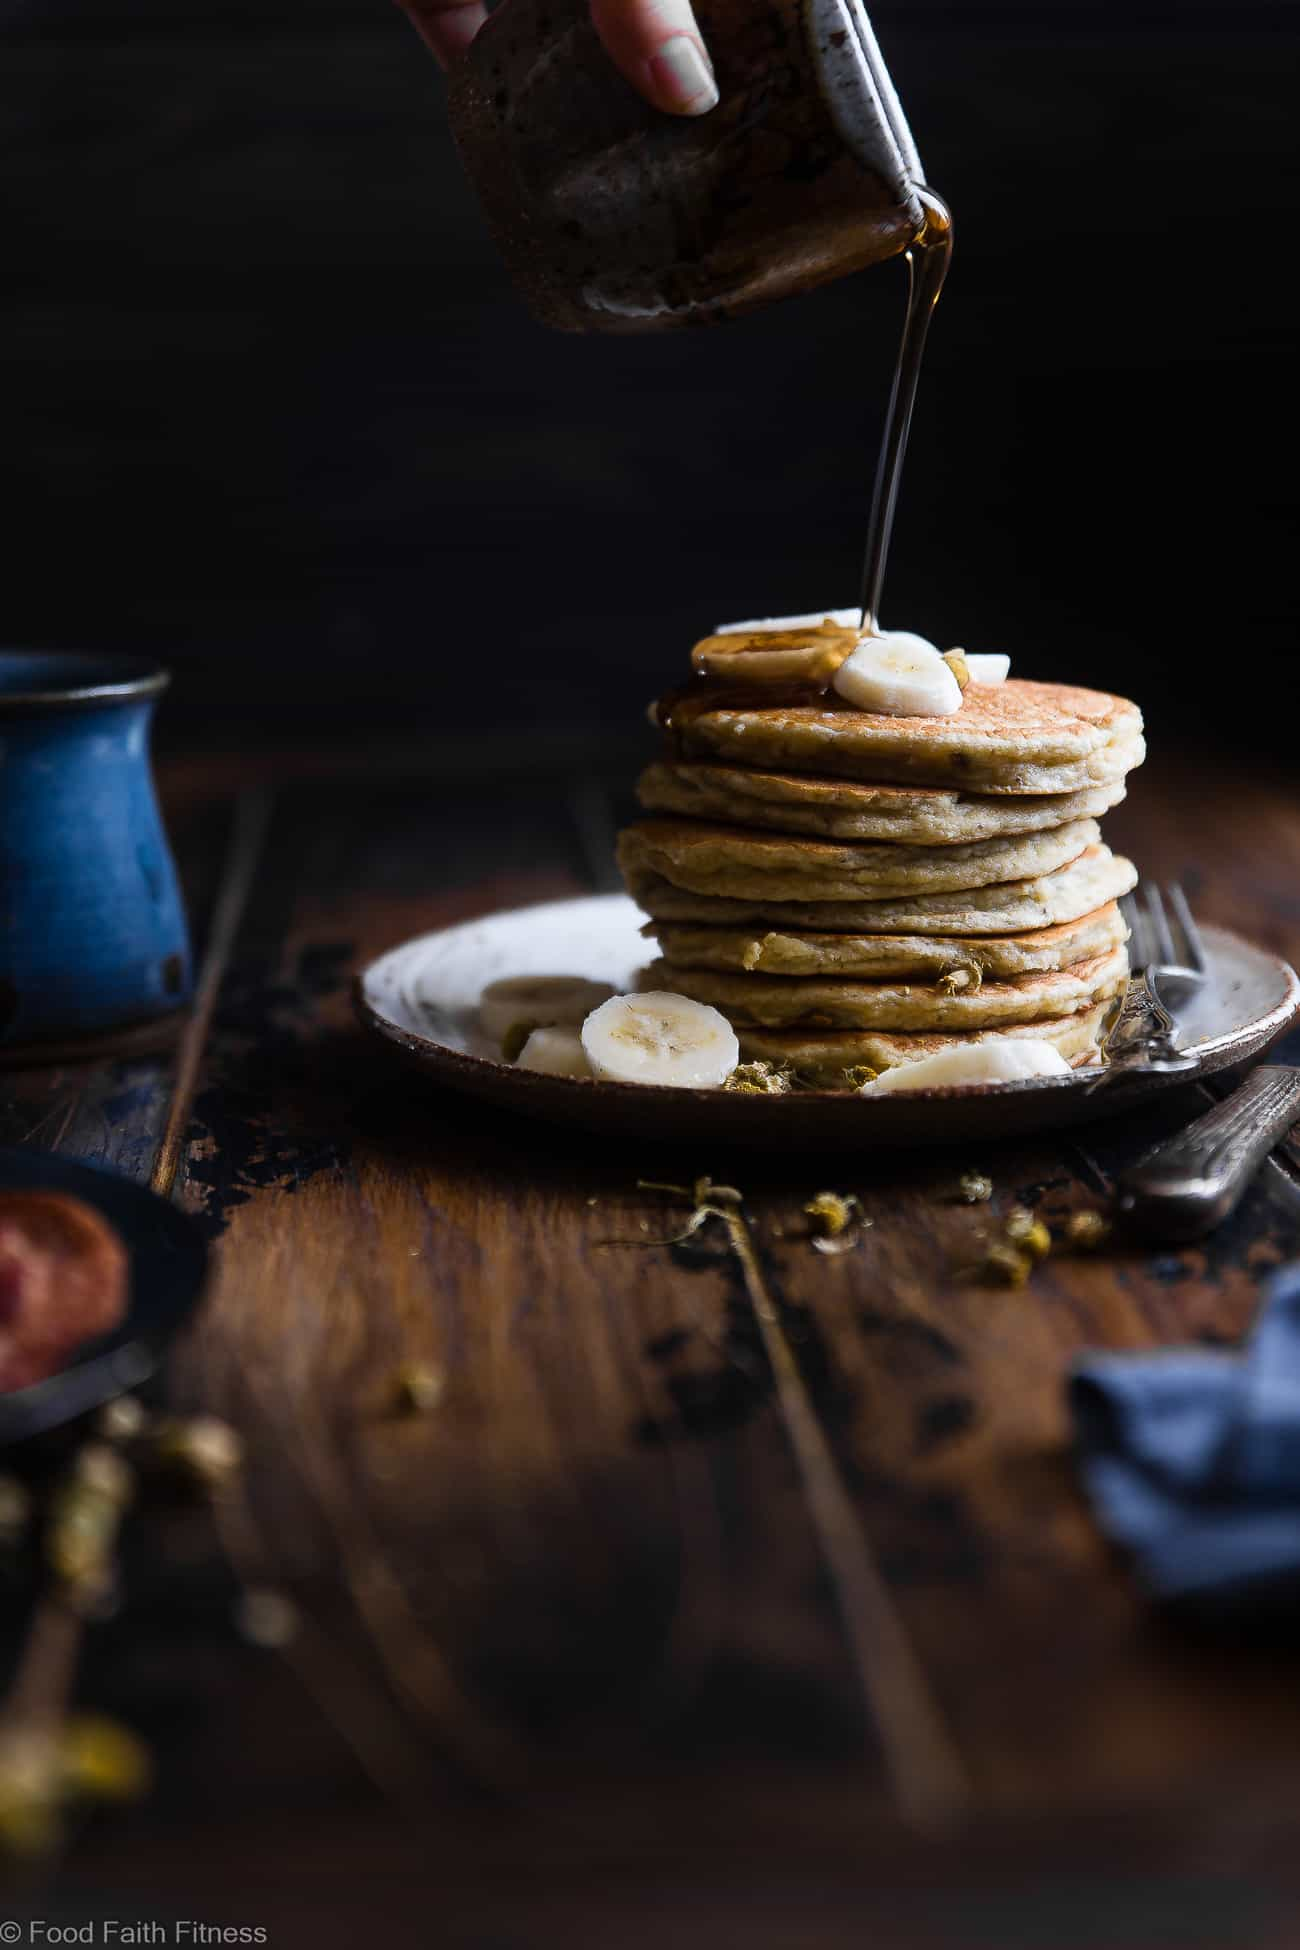 Easy Paleo Banana Pancakes with Coconut Flour - These quick and easy banana paleo pancakes are naturally sweetened, gluten, grain and dairy free and SO light and fluffy! The perfect healthy start to your day or weekend breakfast! | Foodfaithfitness.com | @FoodFaithFit